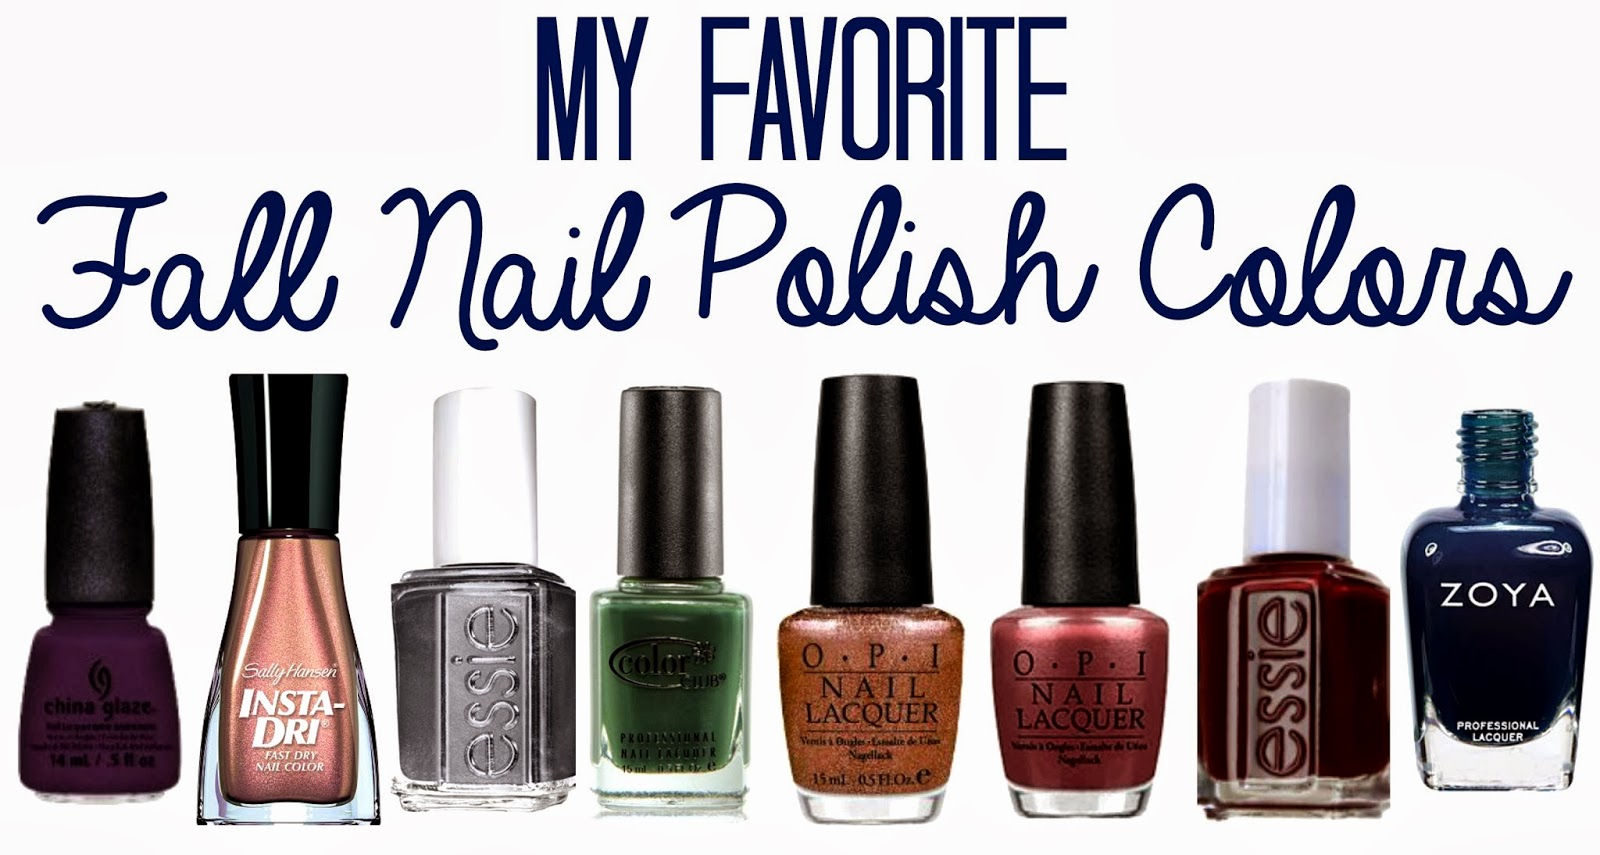 My Favorite Nail Polish